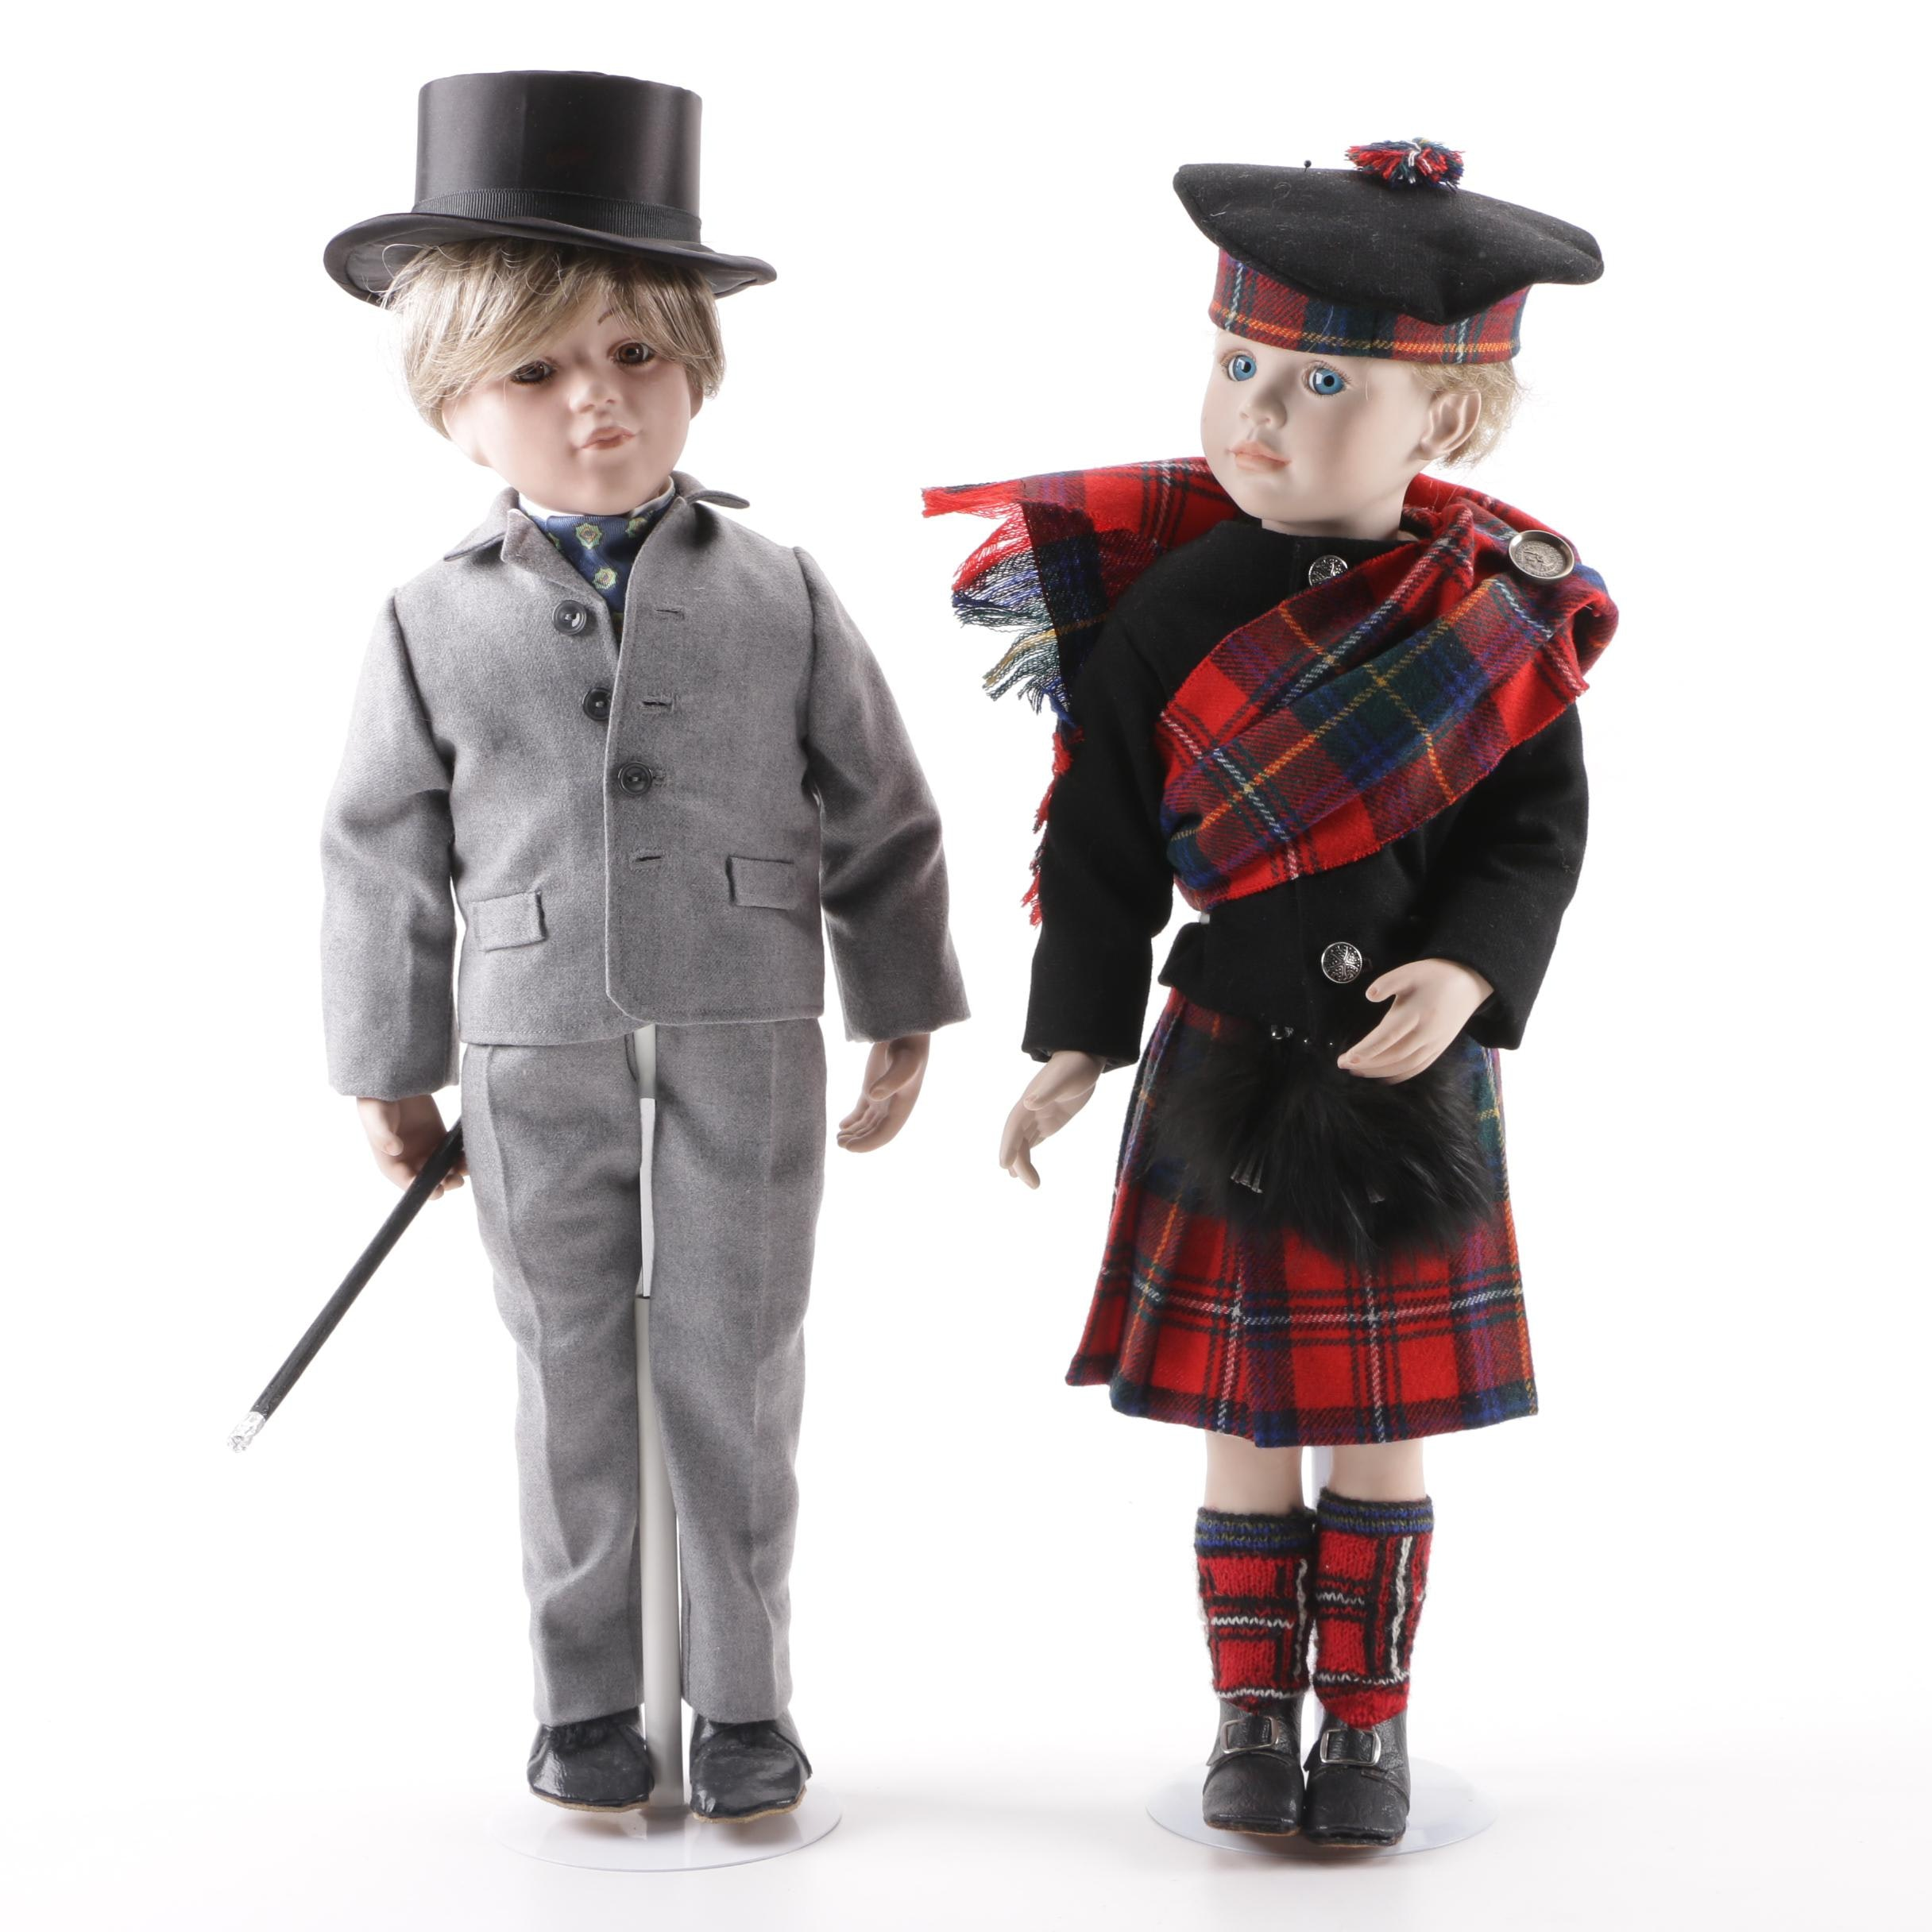 "Rose Pinkul ""Young Lad"" and Tom Francirek ""Man About Town"" Porcelain Dolls"